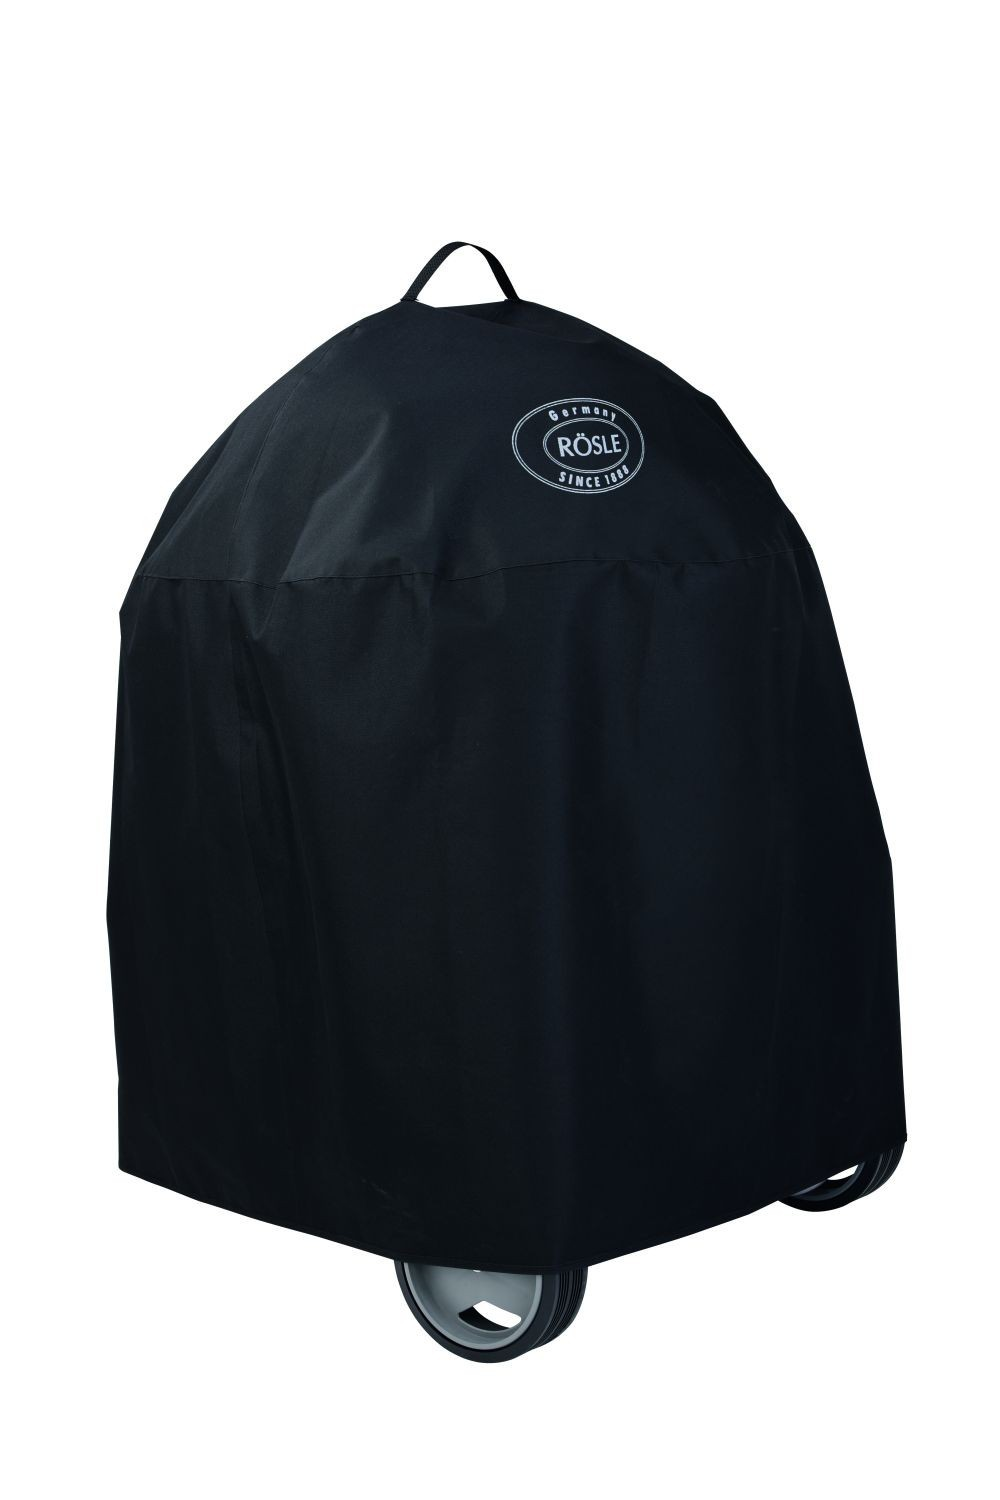 Rosle Charcoal Kettle Grill Cover, 24 Inch